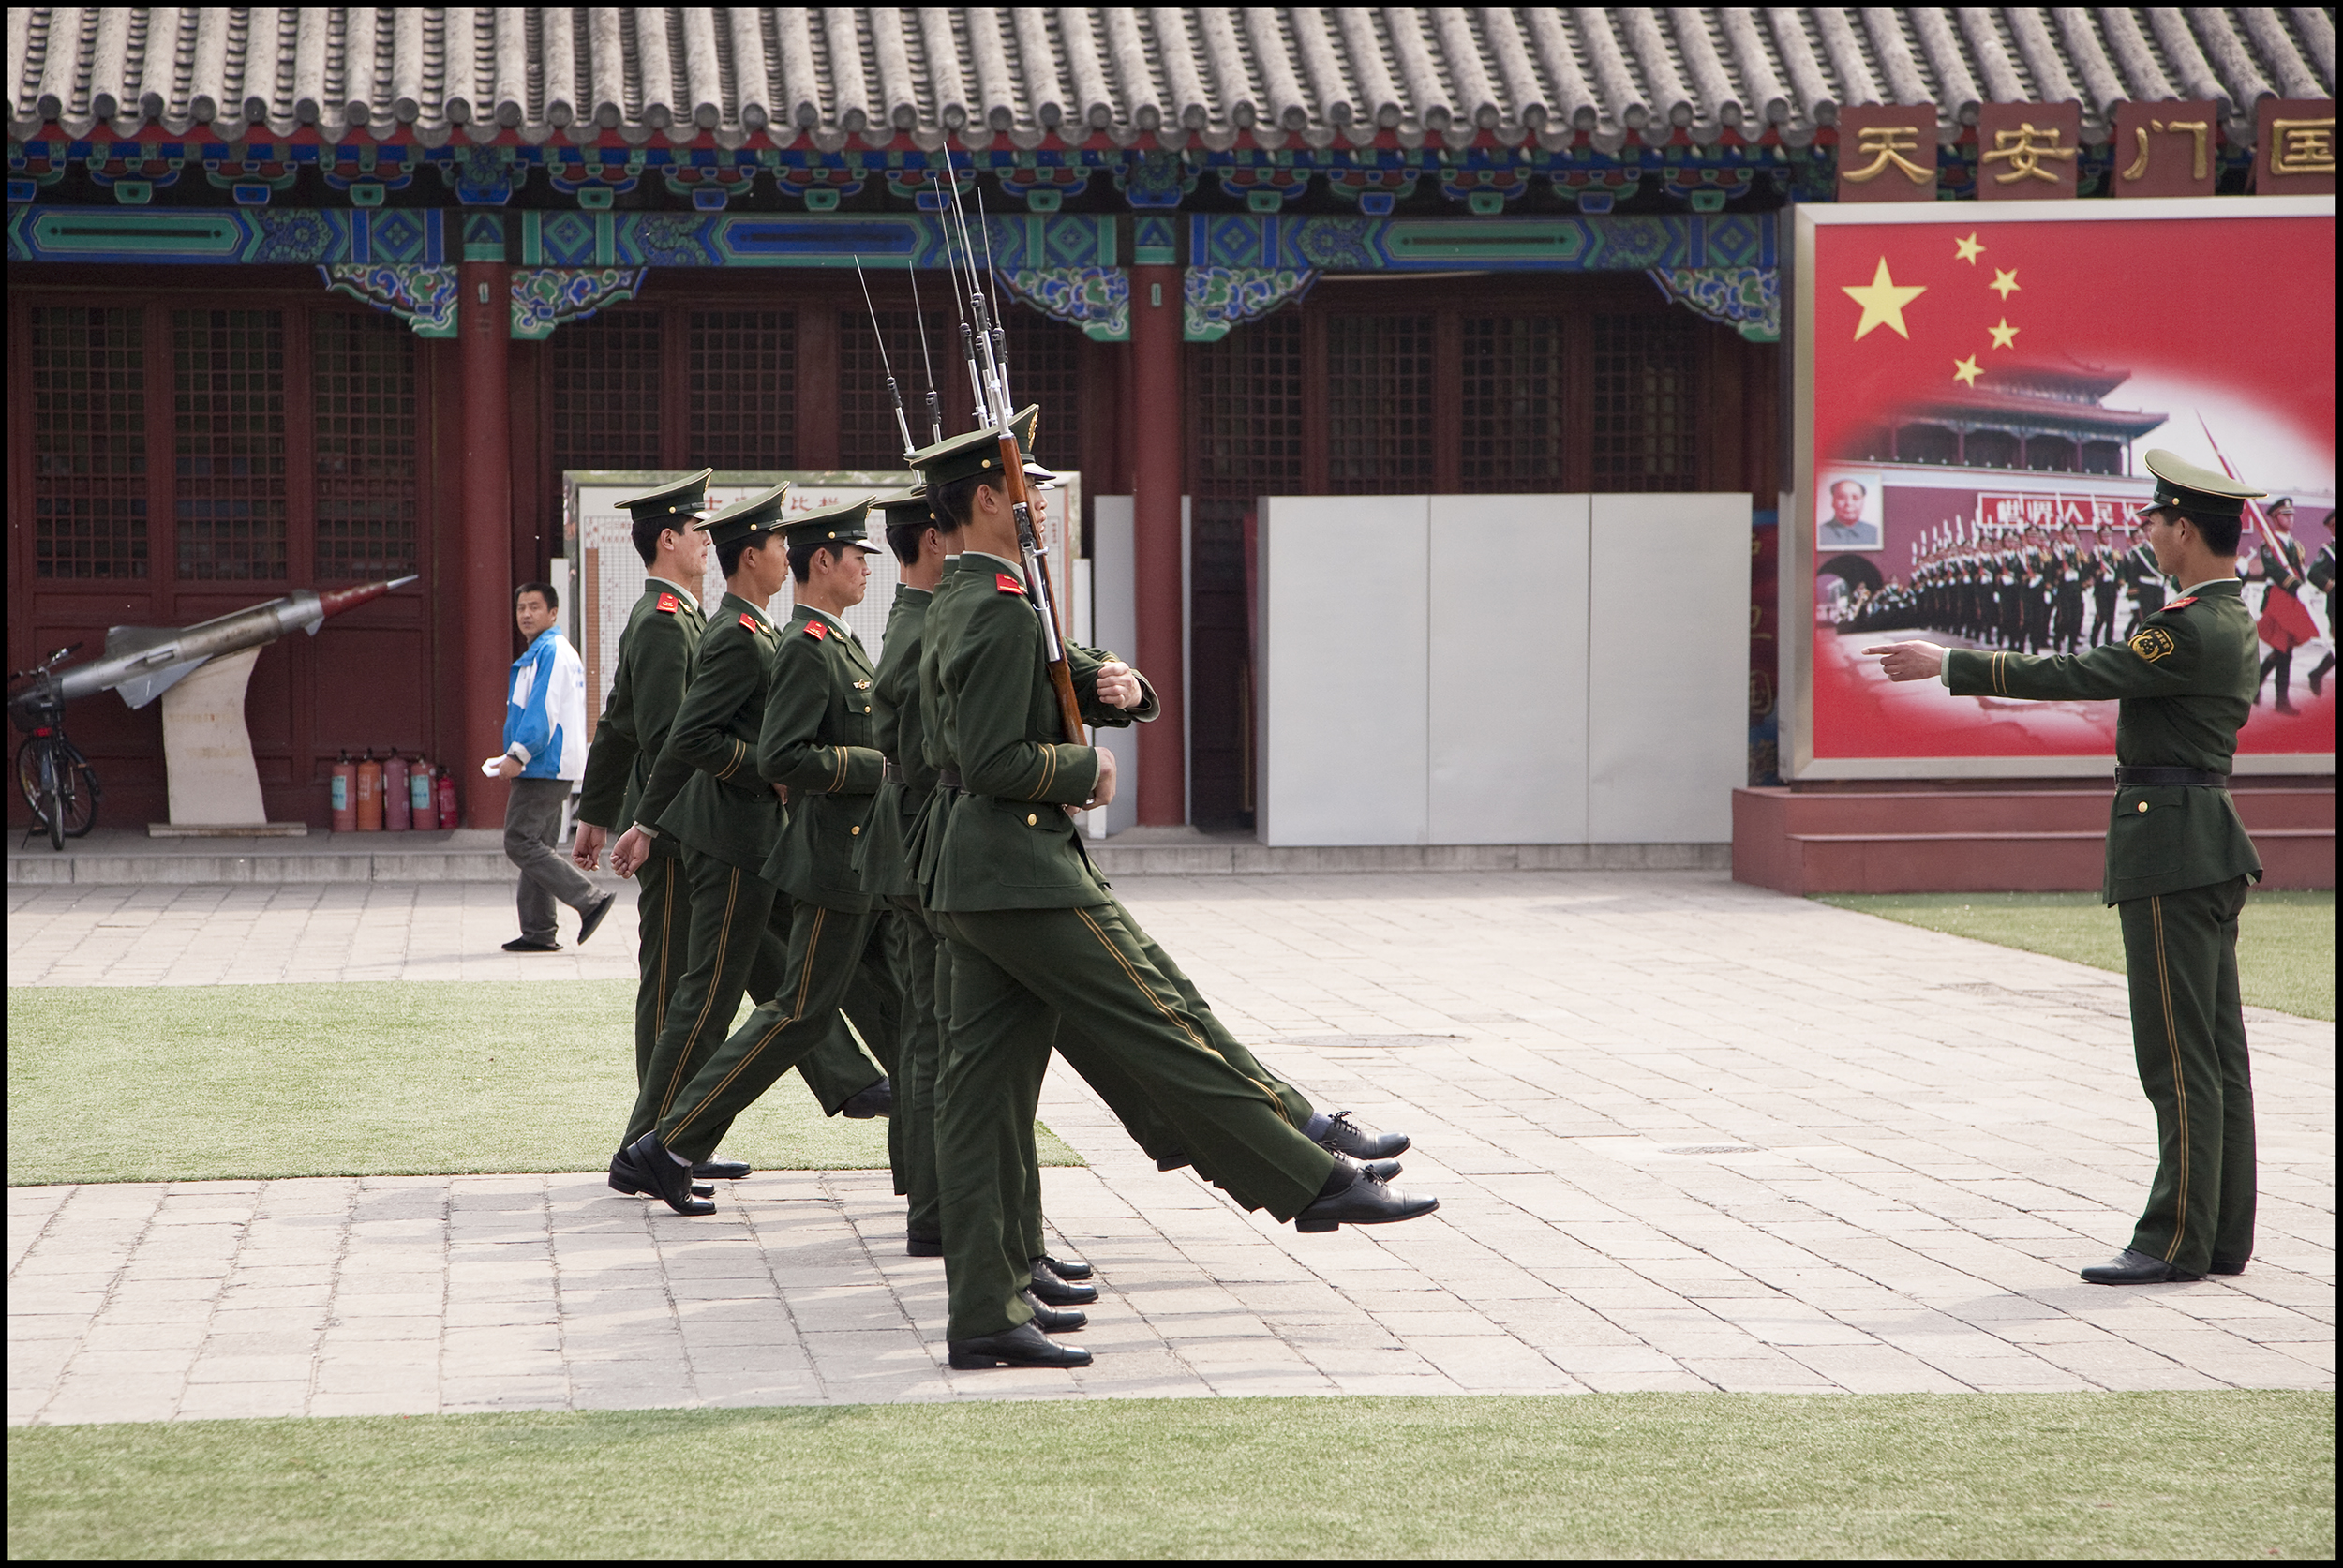 Forbidden City Soldiers 1 18 inch.jpg